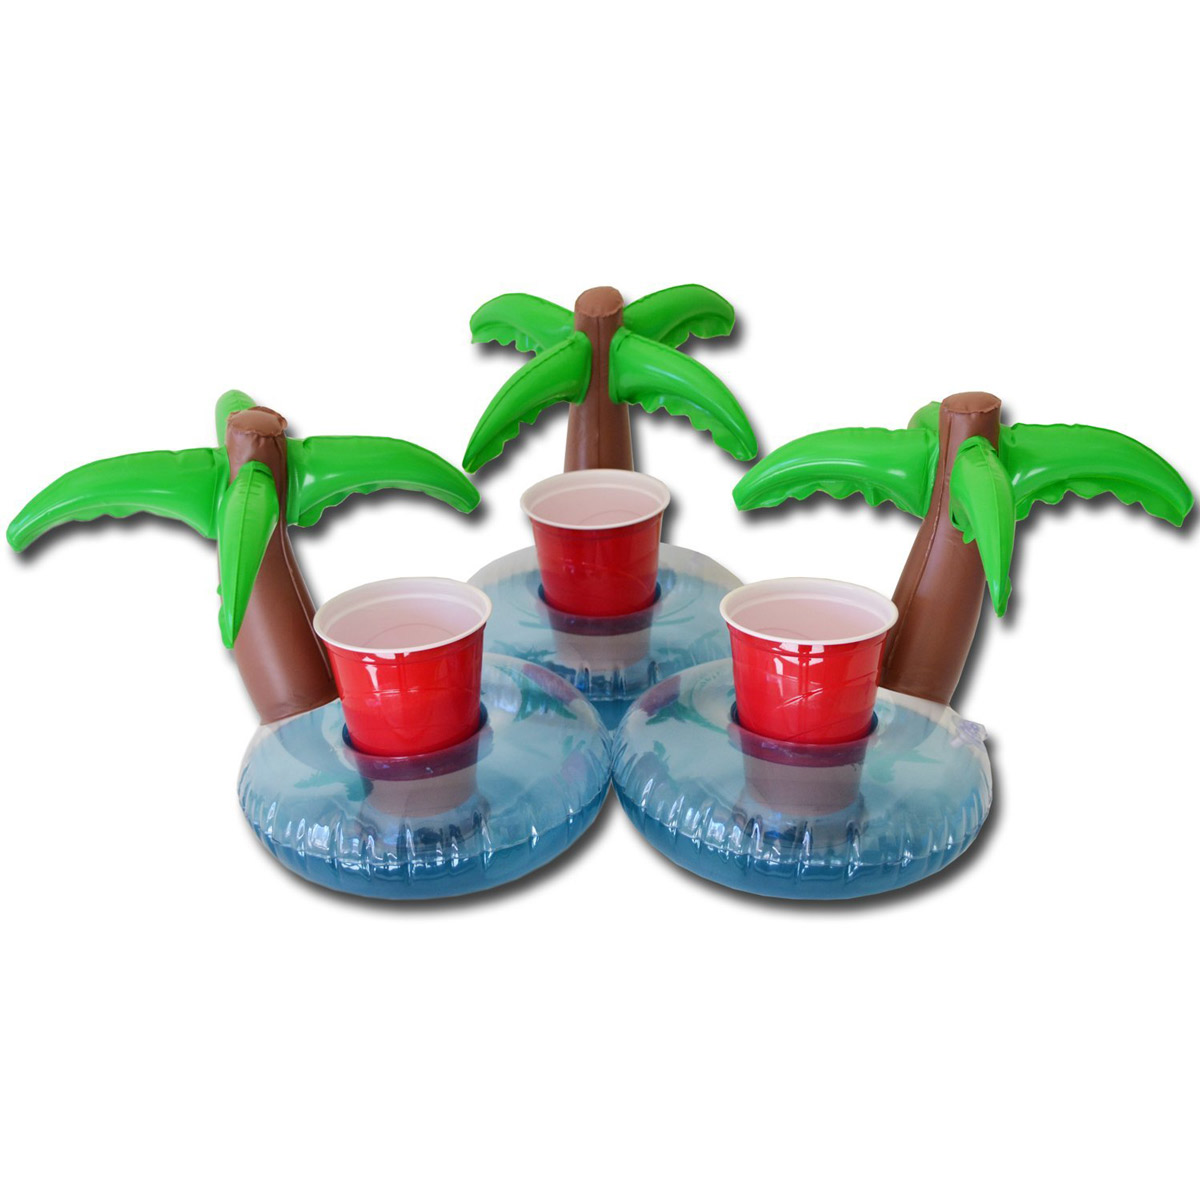 3 Palm Tree Drink Holder Floats | Le Float - Sewa menyewa jadi lebih mudah di Spotsewa